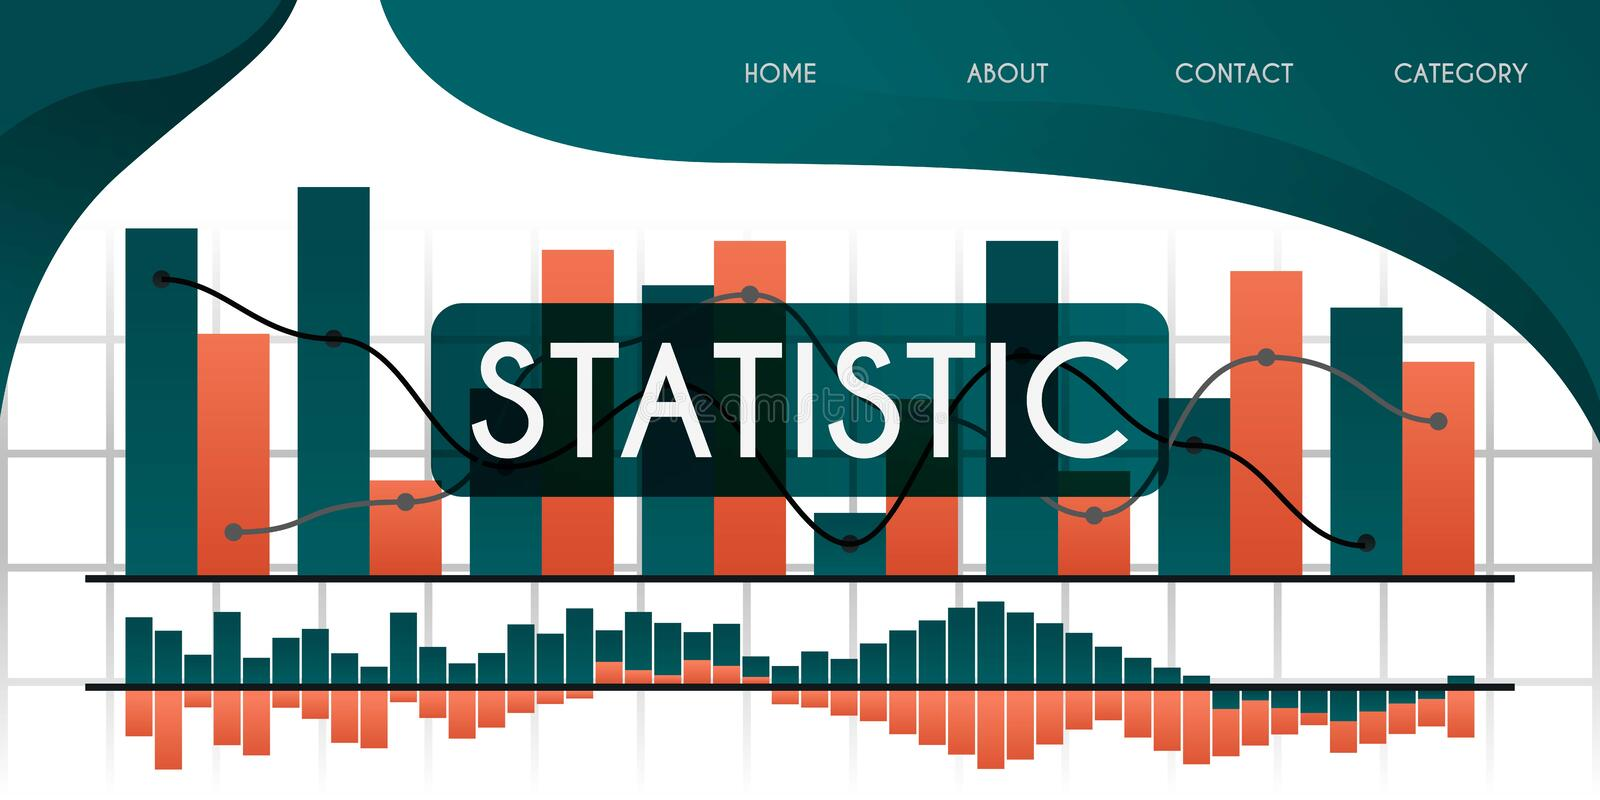 Learn more about statistics and charts in developing economies, businesses and companies vector illustration concept, can be use f royalty free illustration